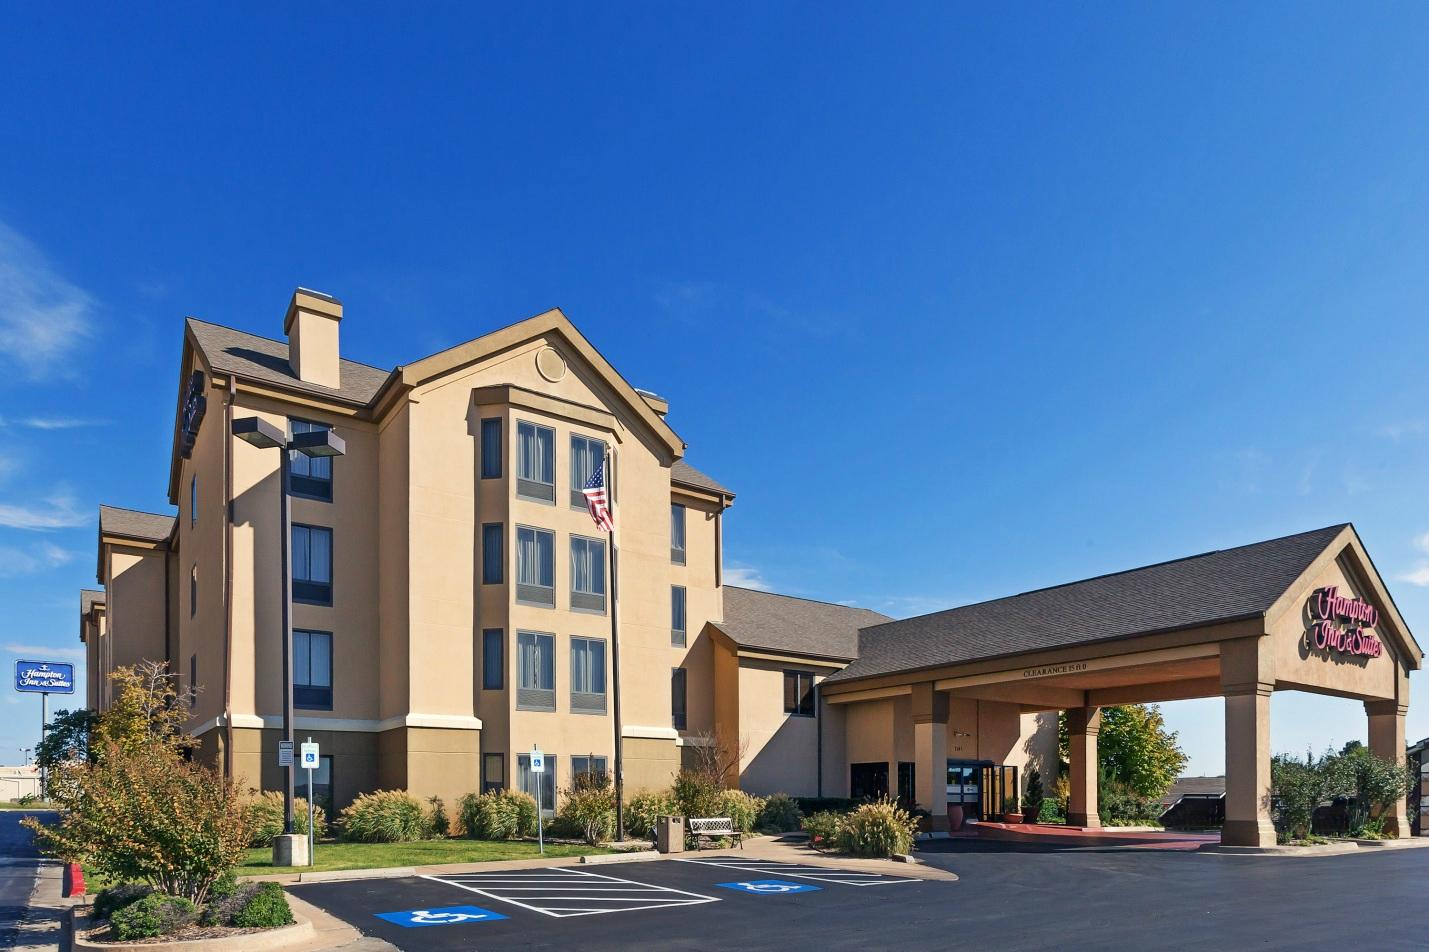 ‪Hampton Inn & Suites Tulsa-Woodland Hills 71st-Memorial‬